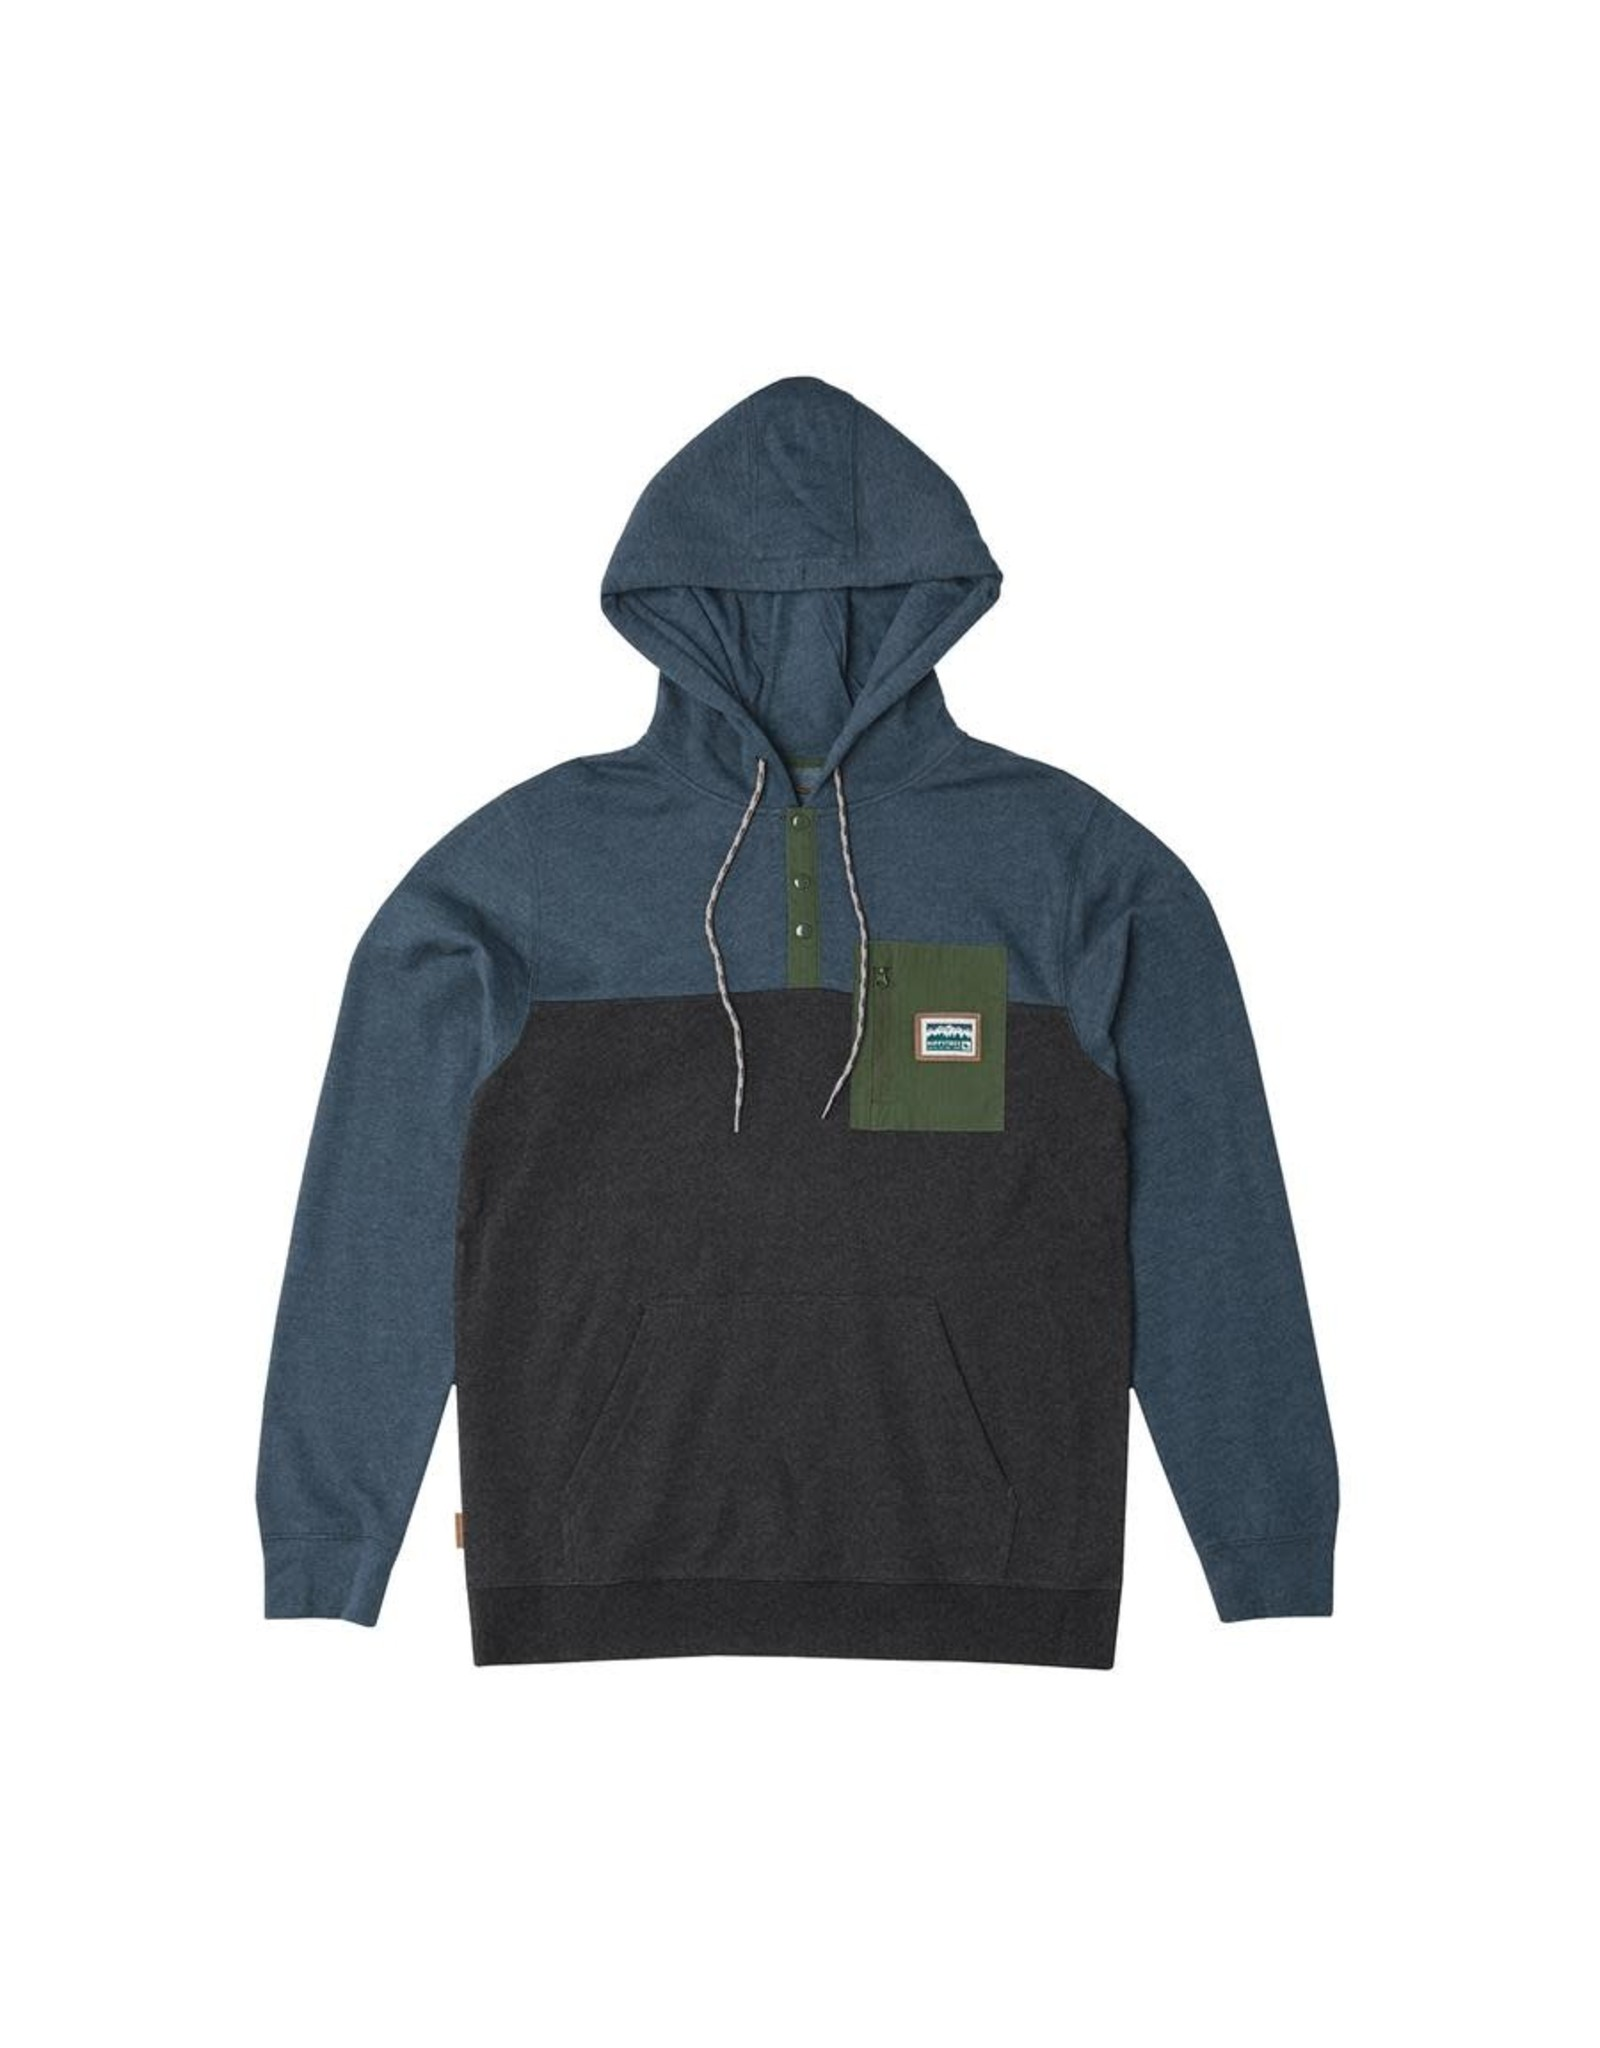 Hippy Tree HT Chattanooga Hoody: Heather Blue- XL